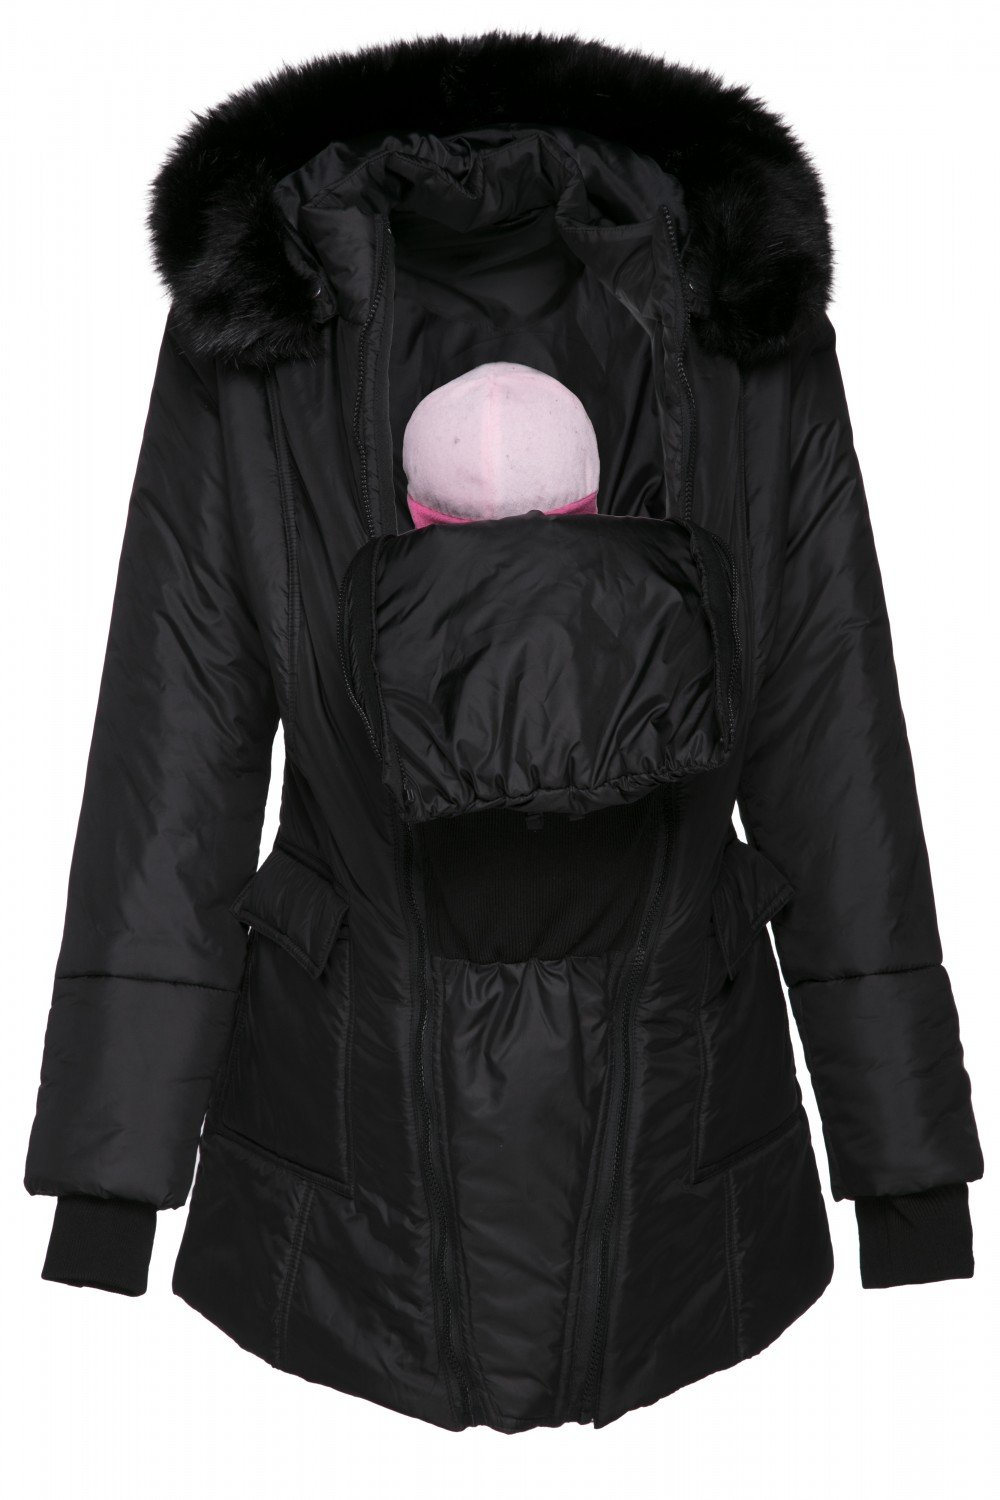 Happy Mama. Womens Maternity Padded Jacket 3in1 Two-Sided Removable Insert. 449p (Black, US 12, 2XL) by Happy Mama